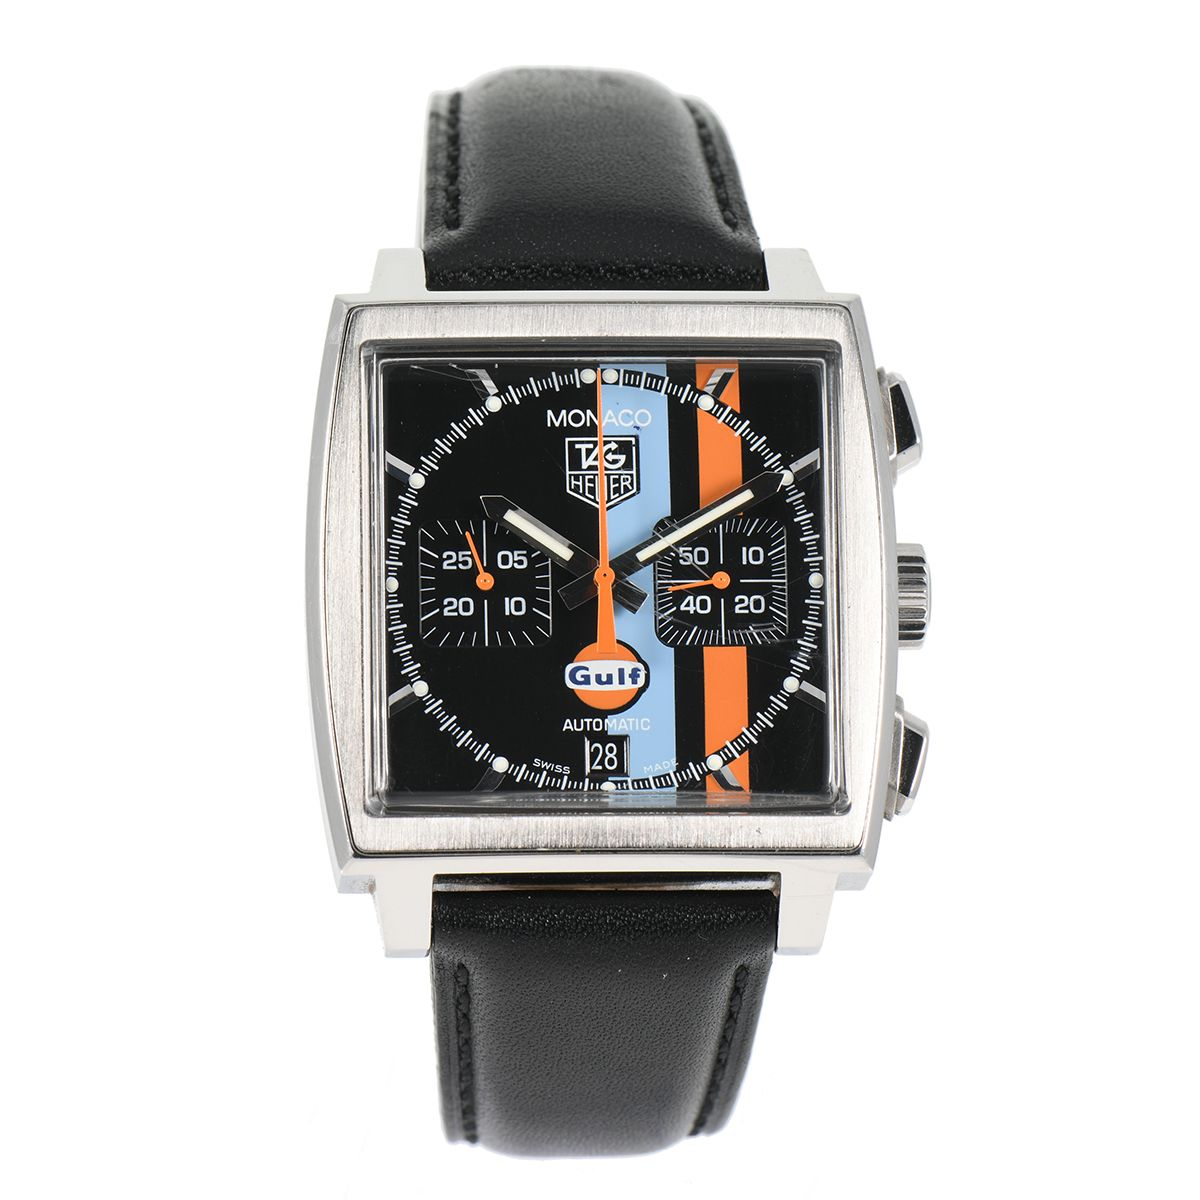 Tag Heuer Monaco Gulf CW211A Steel & Black 42mm Mens Watch